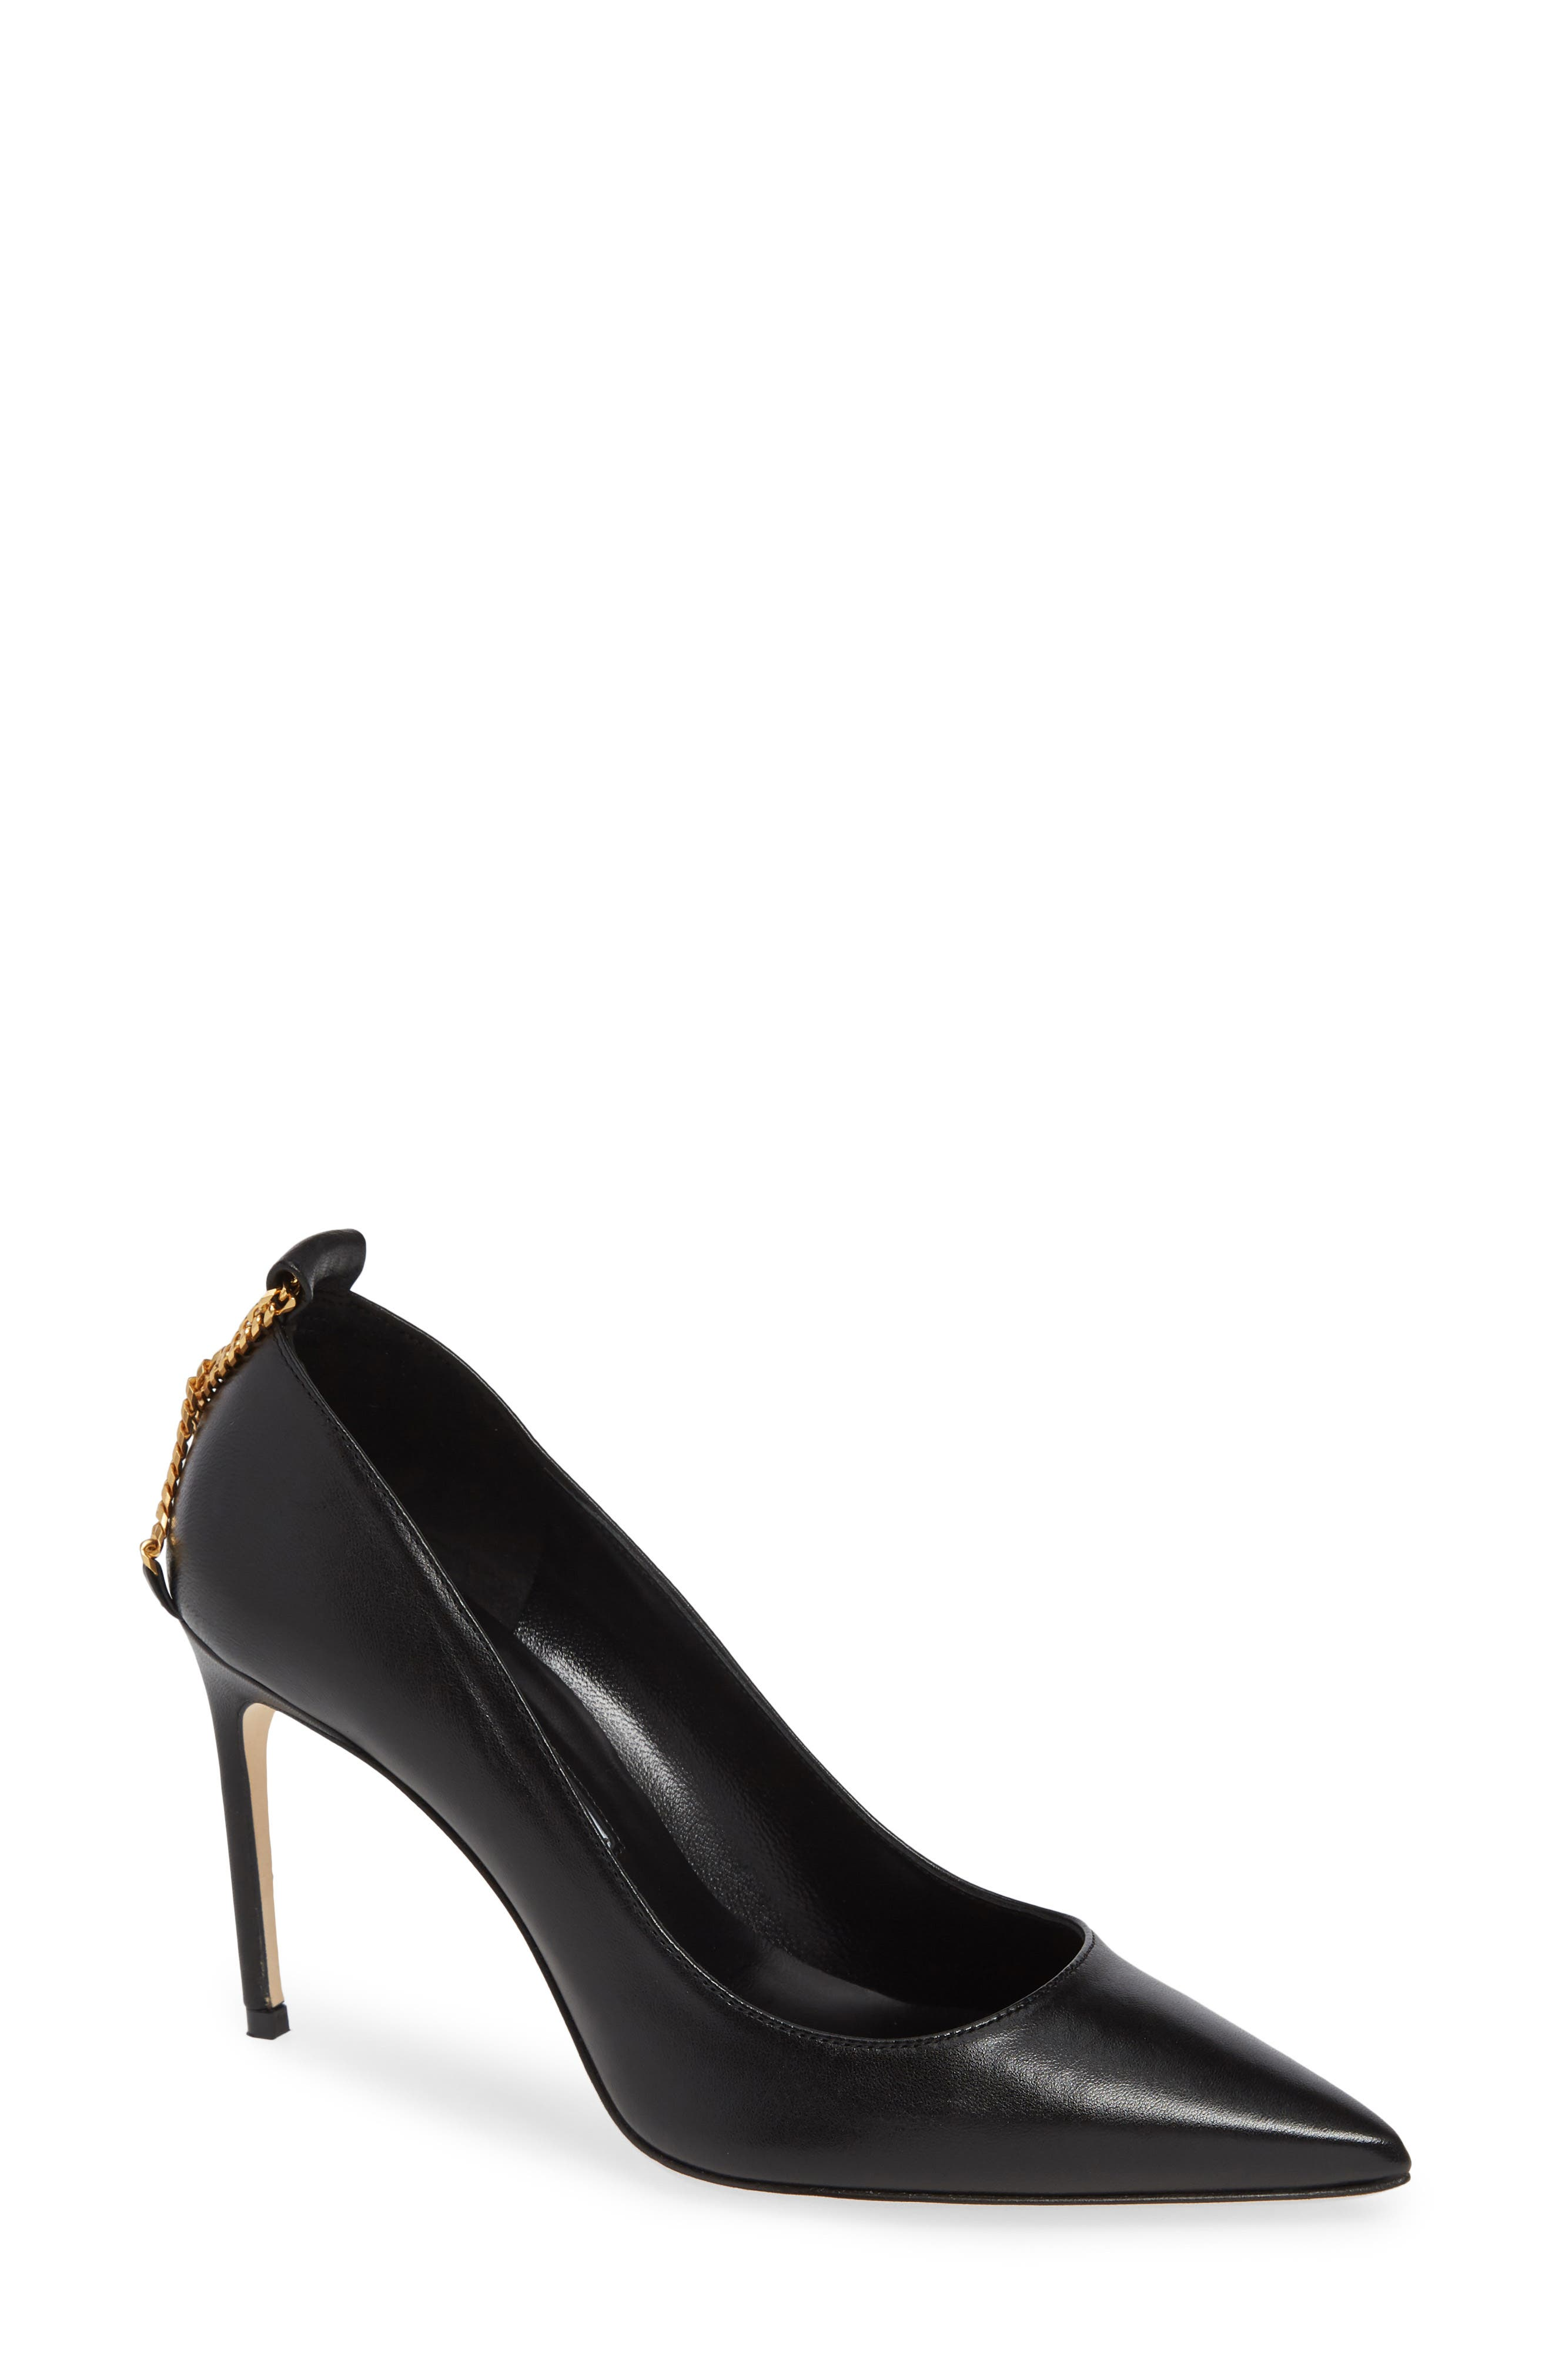 BRIAN ATWOOD Voyage Pump in Black Leather